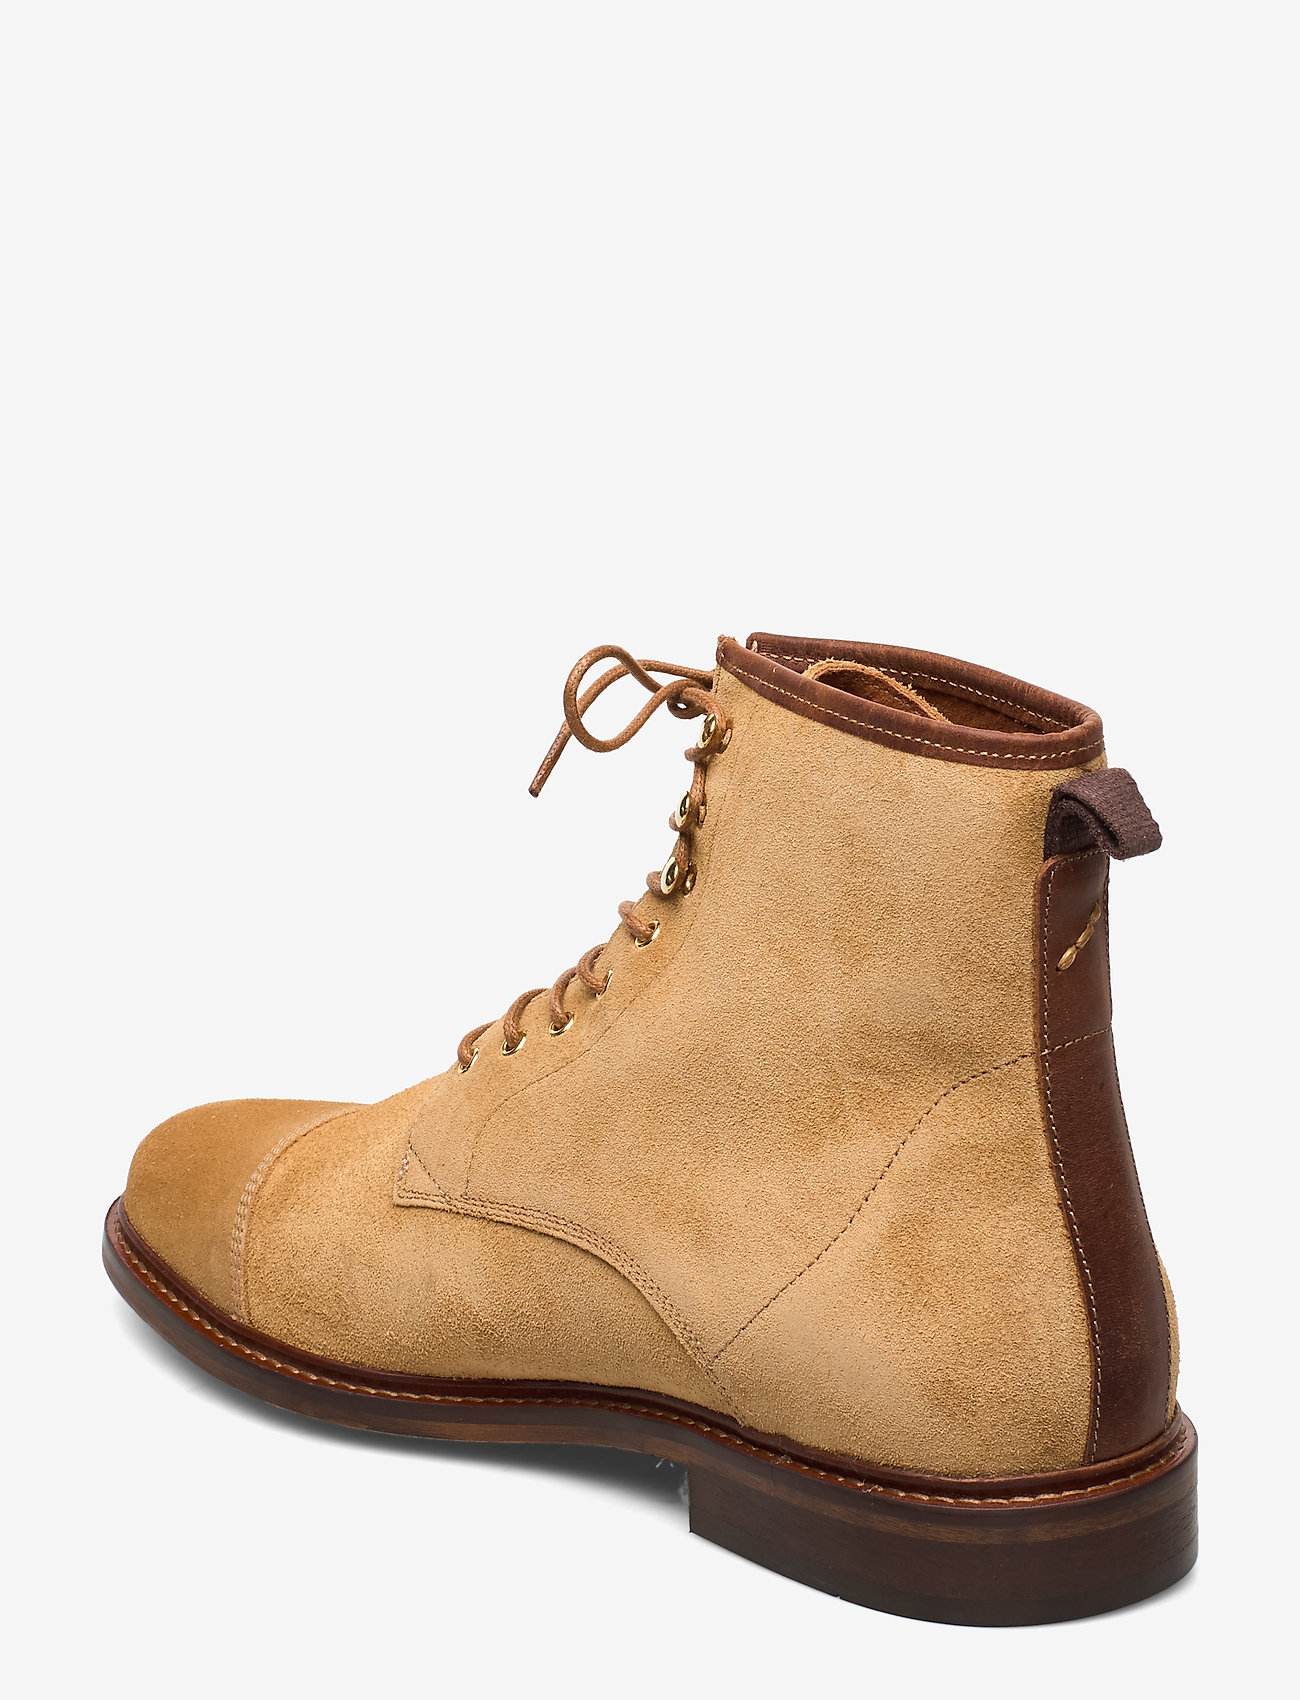 Stb-curtis S (Camel) - Shoe The Bear